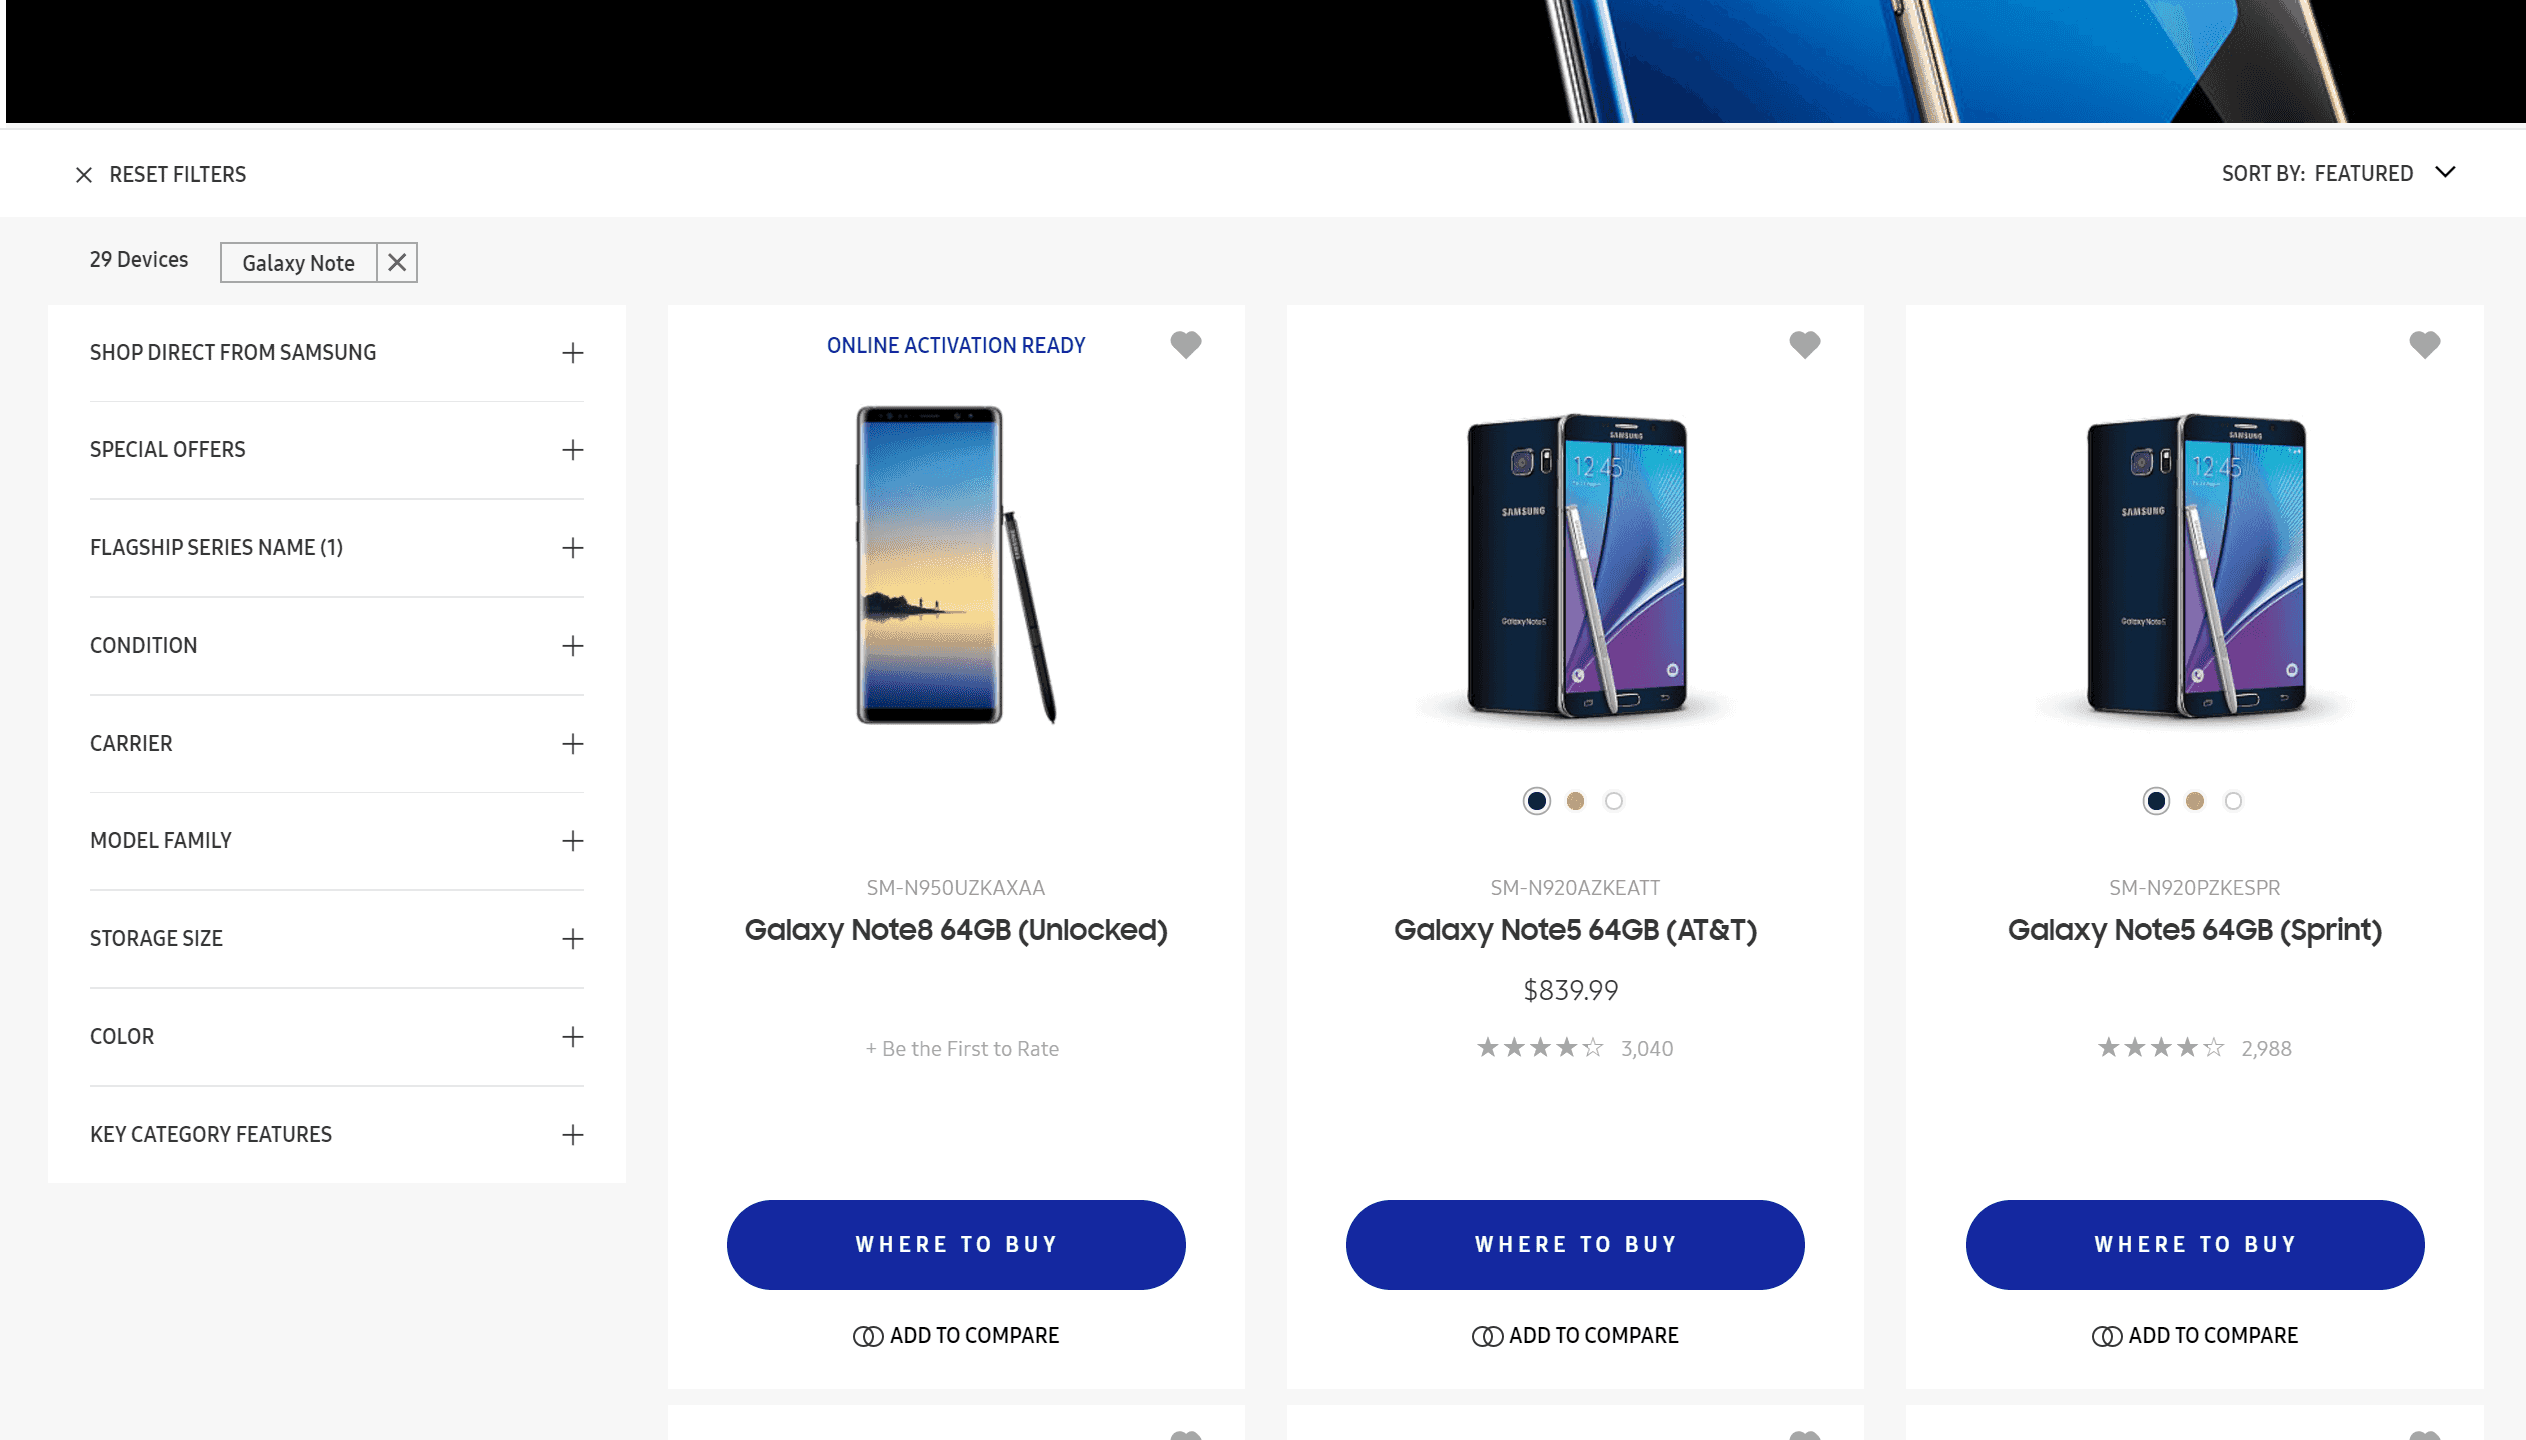 Galaxy Note 8 Samsung Web Store 2